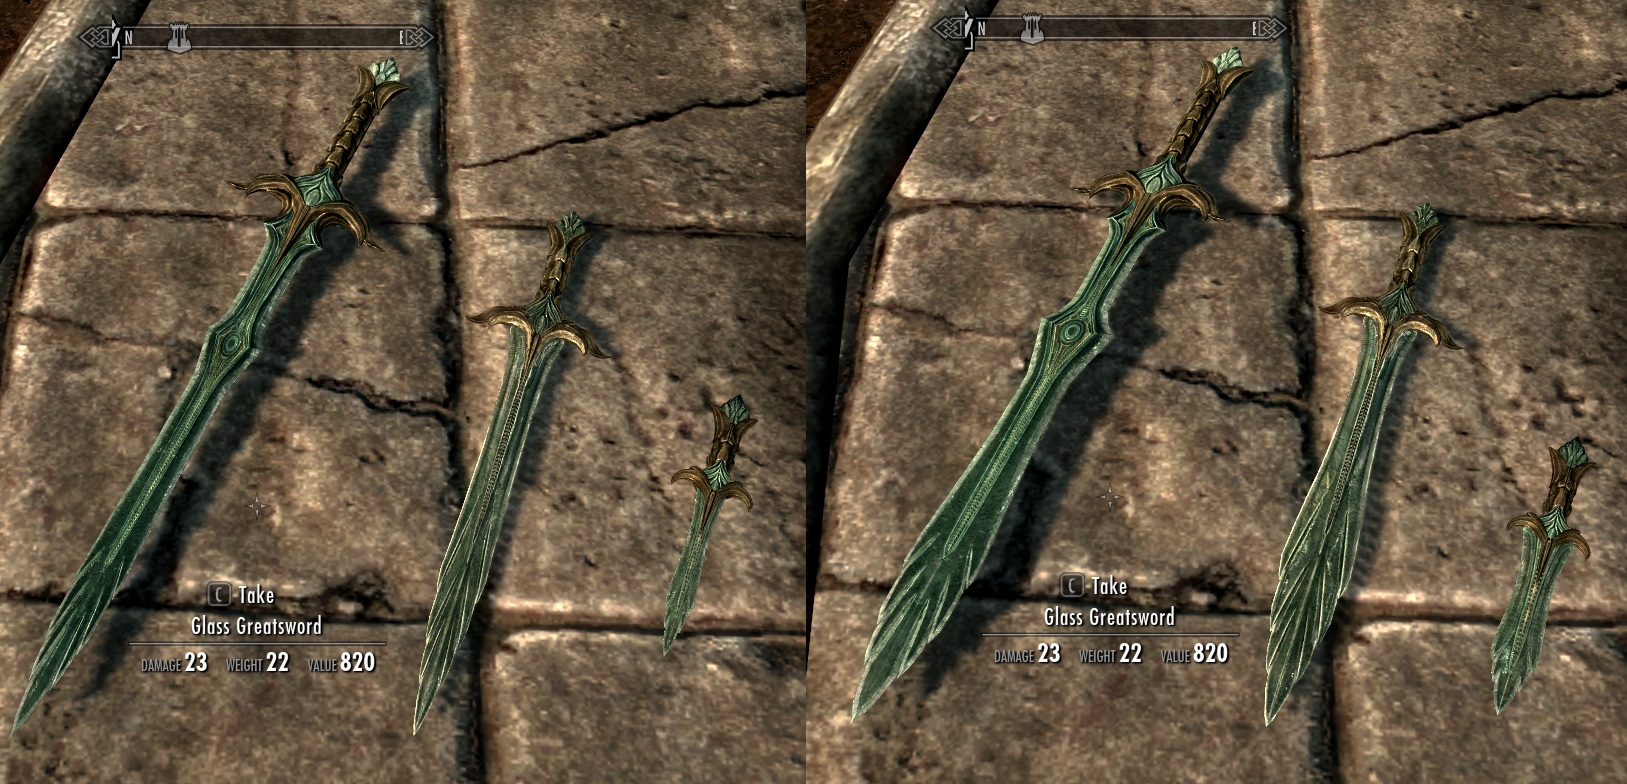 Skyrim Elven Greatsword Narrow glass and elven swords at skyrim nexus ...